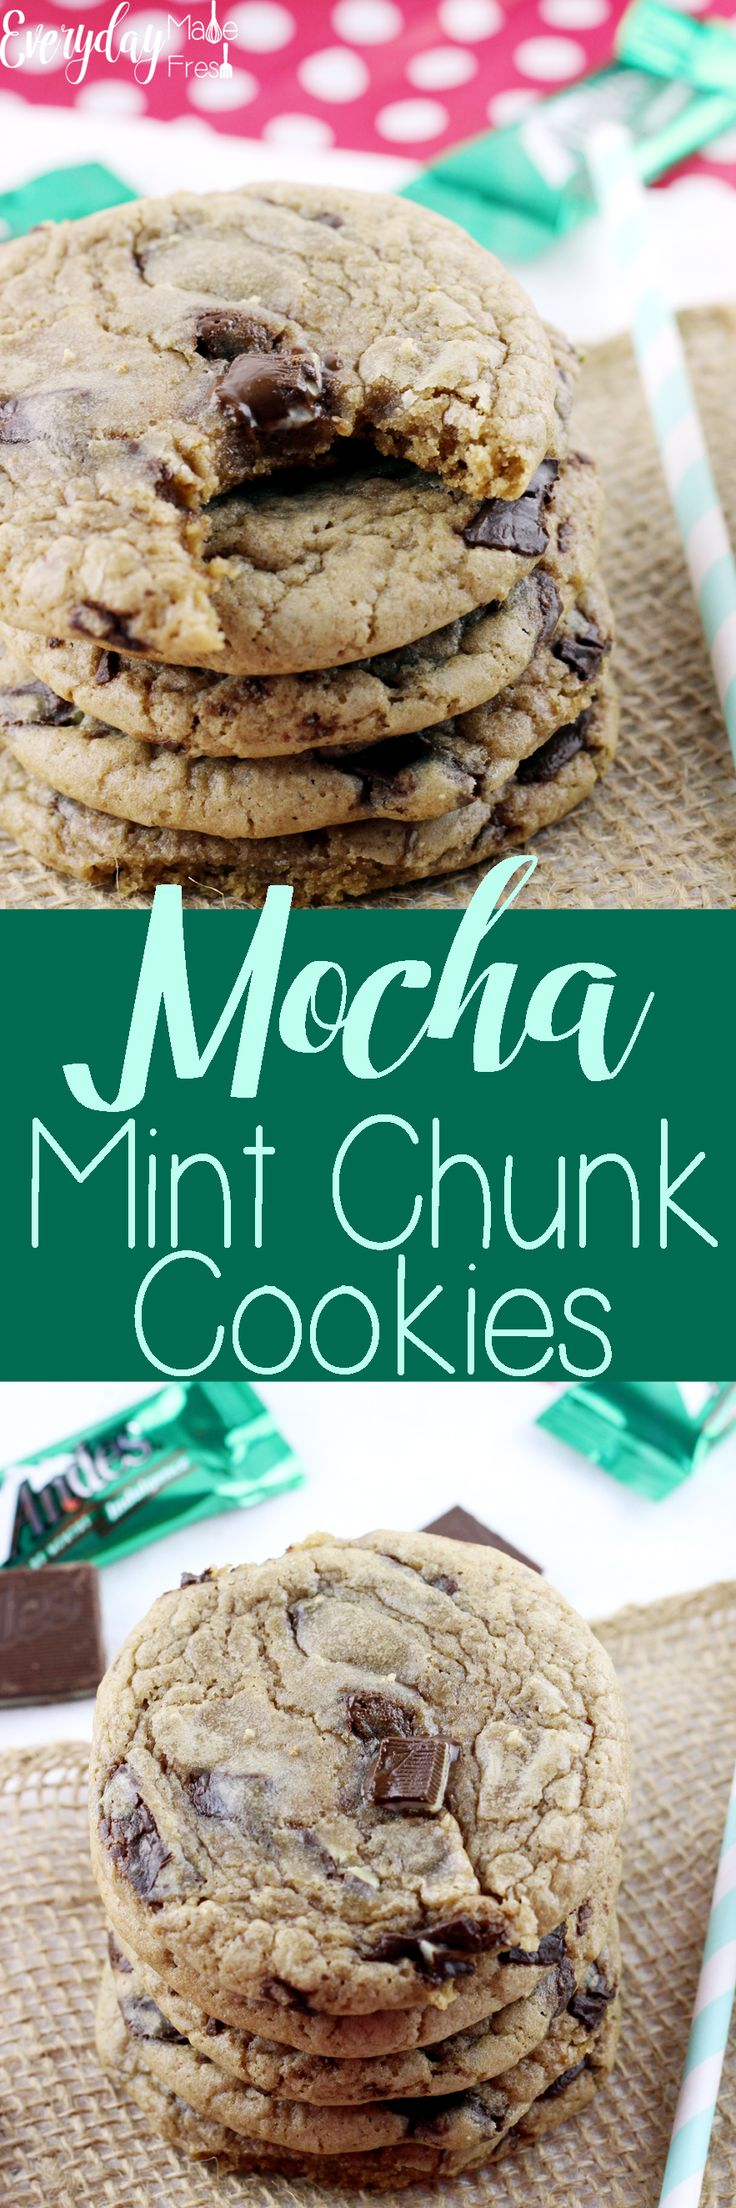 Hints of coffee, chunks of chocolate mint candies, and a chewy texture that will have you coming back for more. These Mocha Mint Chocolate Chunk Cookies are one of my personal favorites!  http://www.everydaymadefresh.com/mocha-mint-chocolate-chunk-cookies/